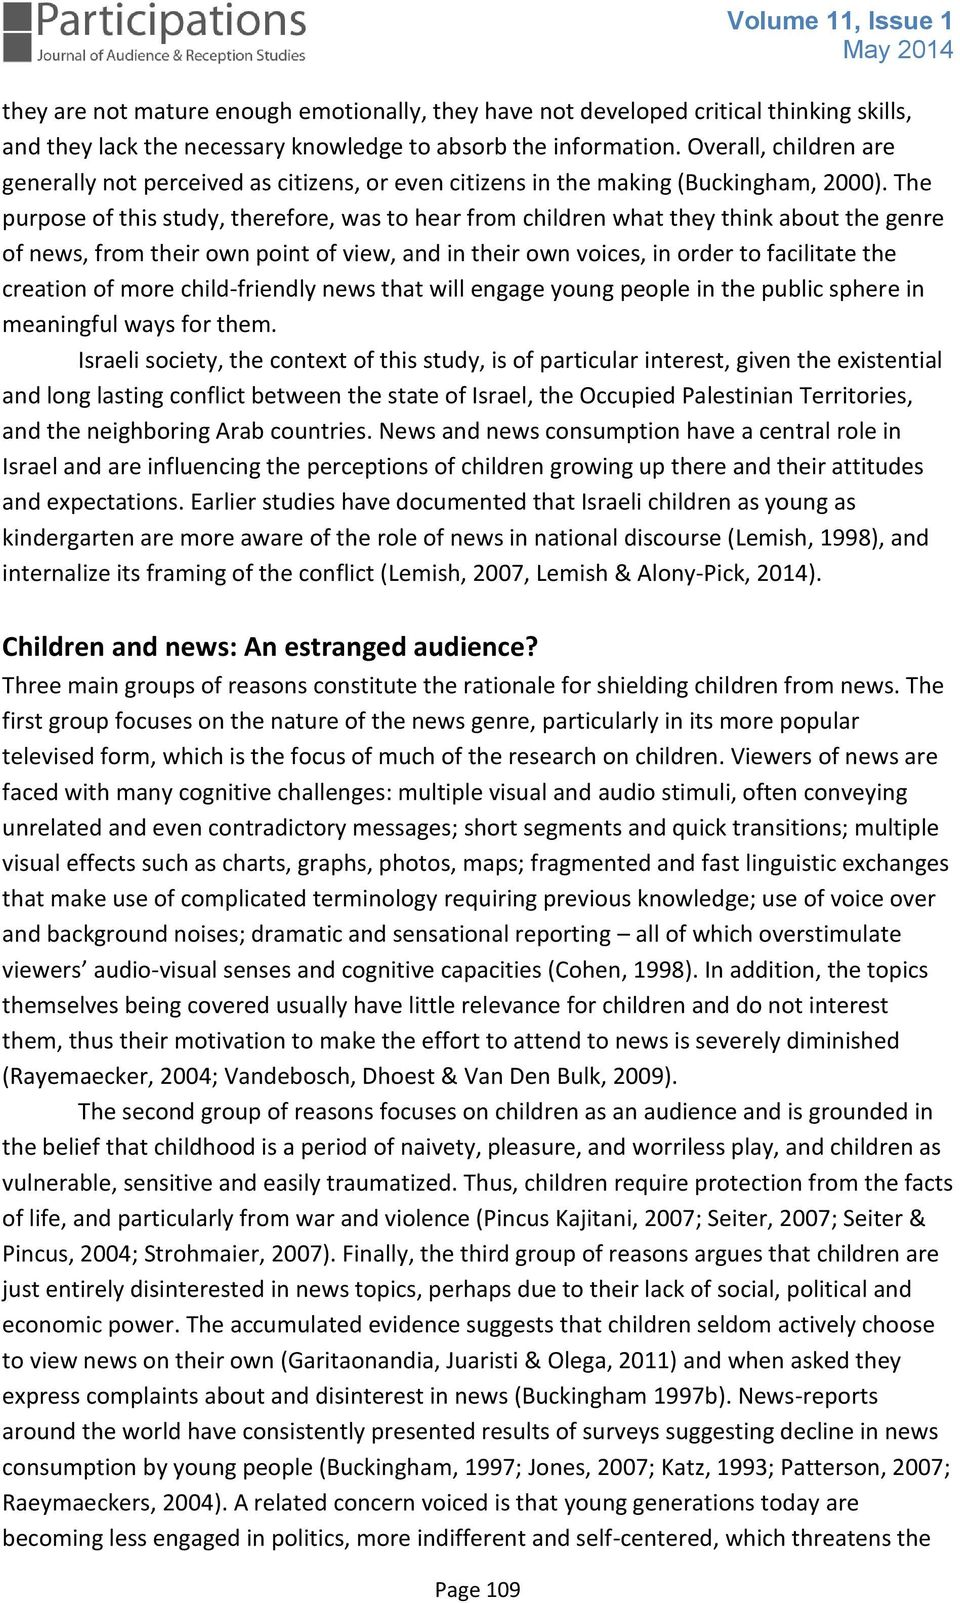 The purpose of this study, therefore, was to hear from children what they think about the genre of news, from their own point of view, and in their own voices, in order to facilitate the creation of